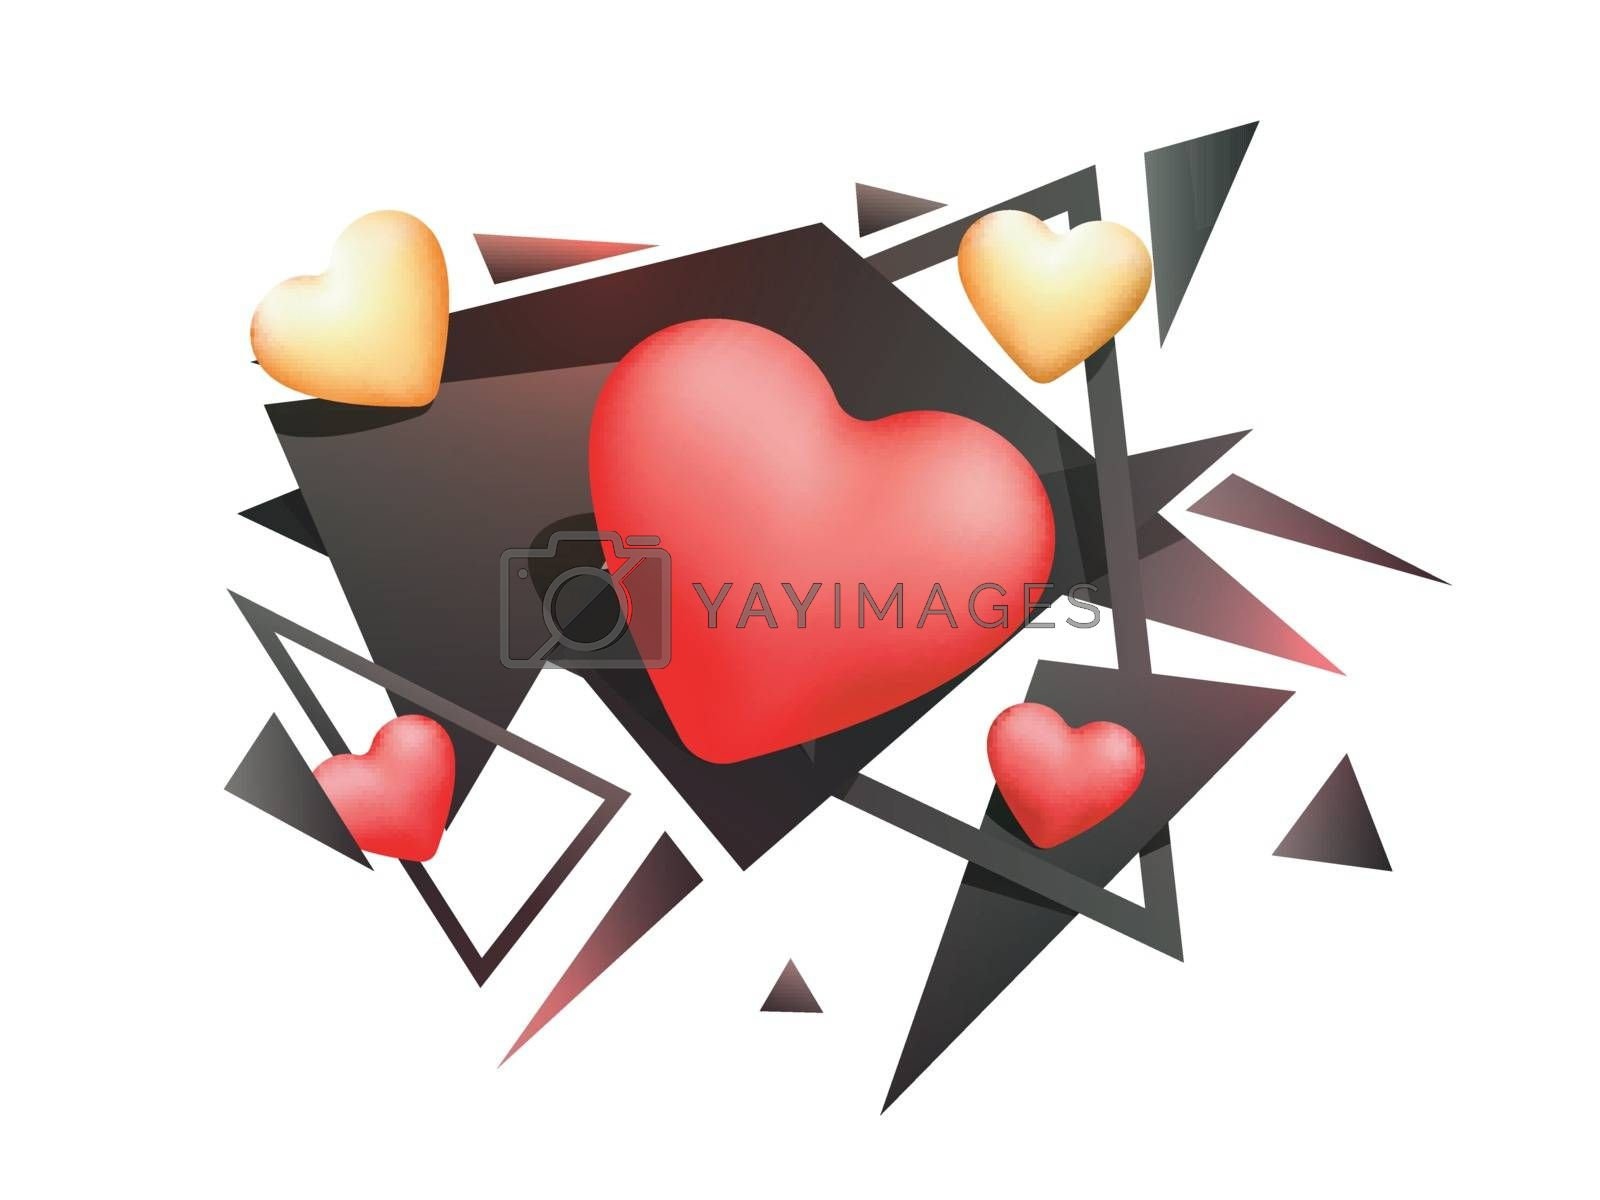 Glossy creative Hearts with abstract design for Happy Valentine's Day Celebration.